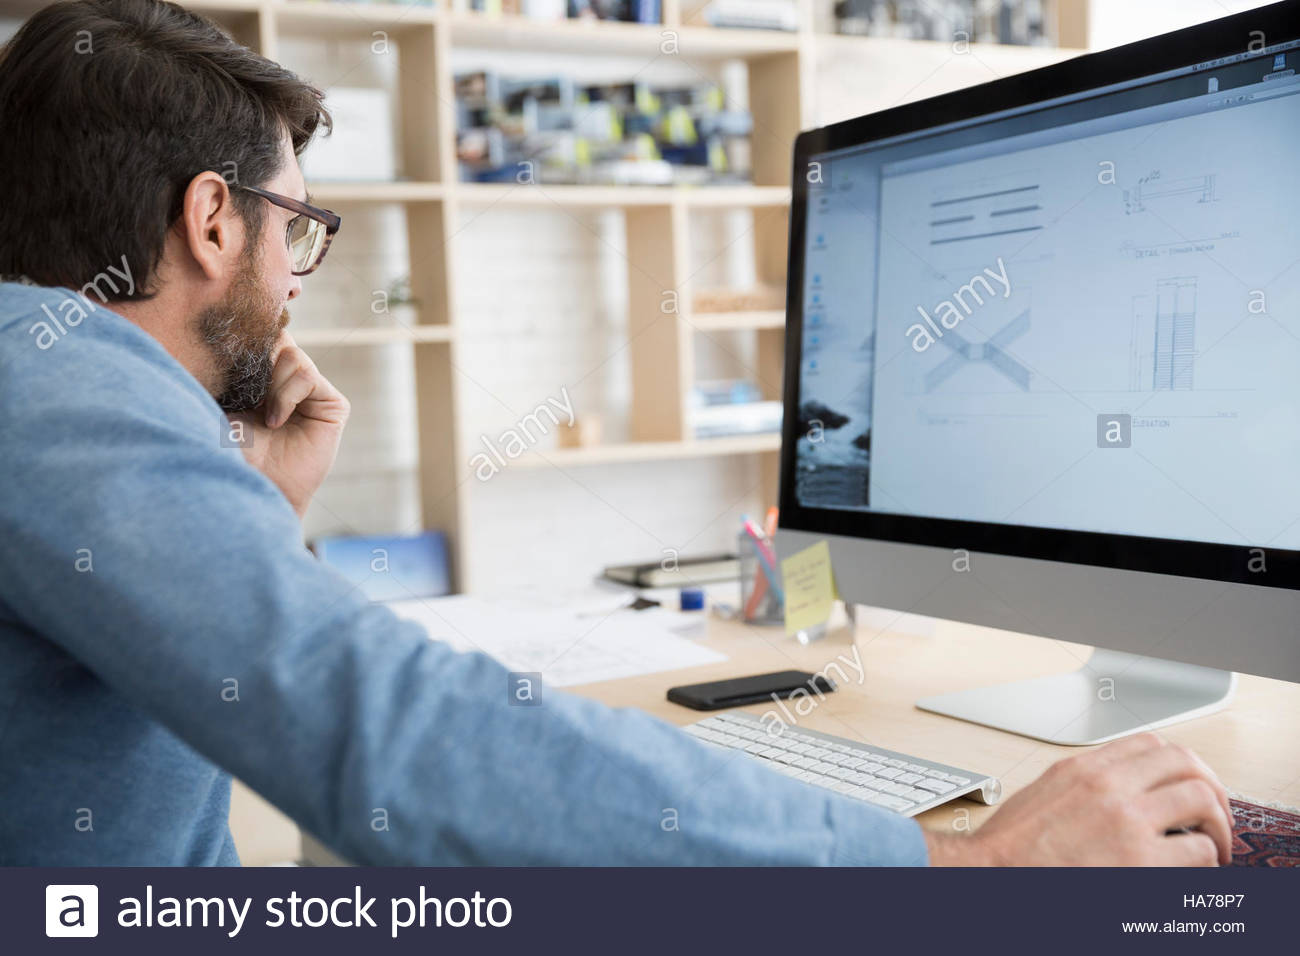 Computer Diagram Stock Photos Images Alamy Glass On The Electronic Schematic Diagramideal Technology Background Architect Reviewing Digital In Office Image